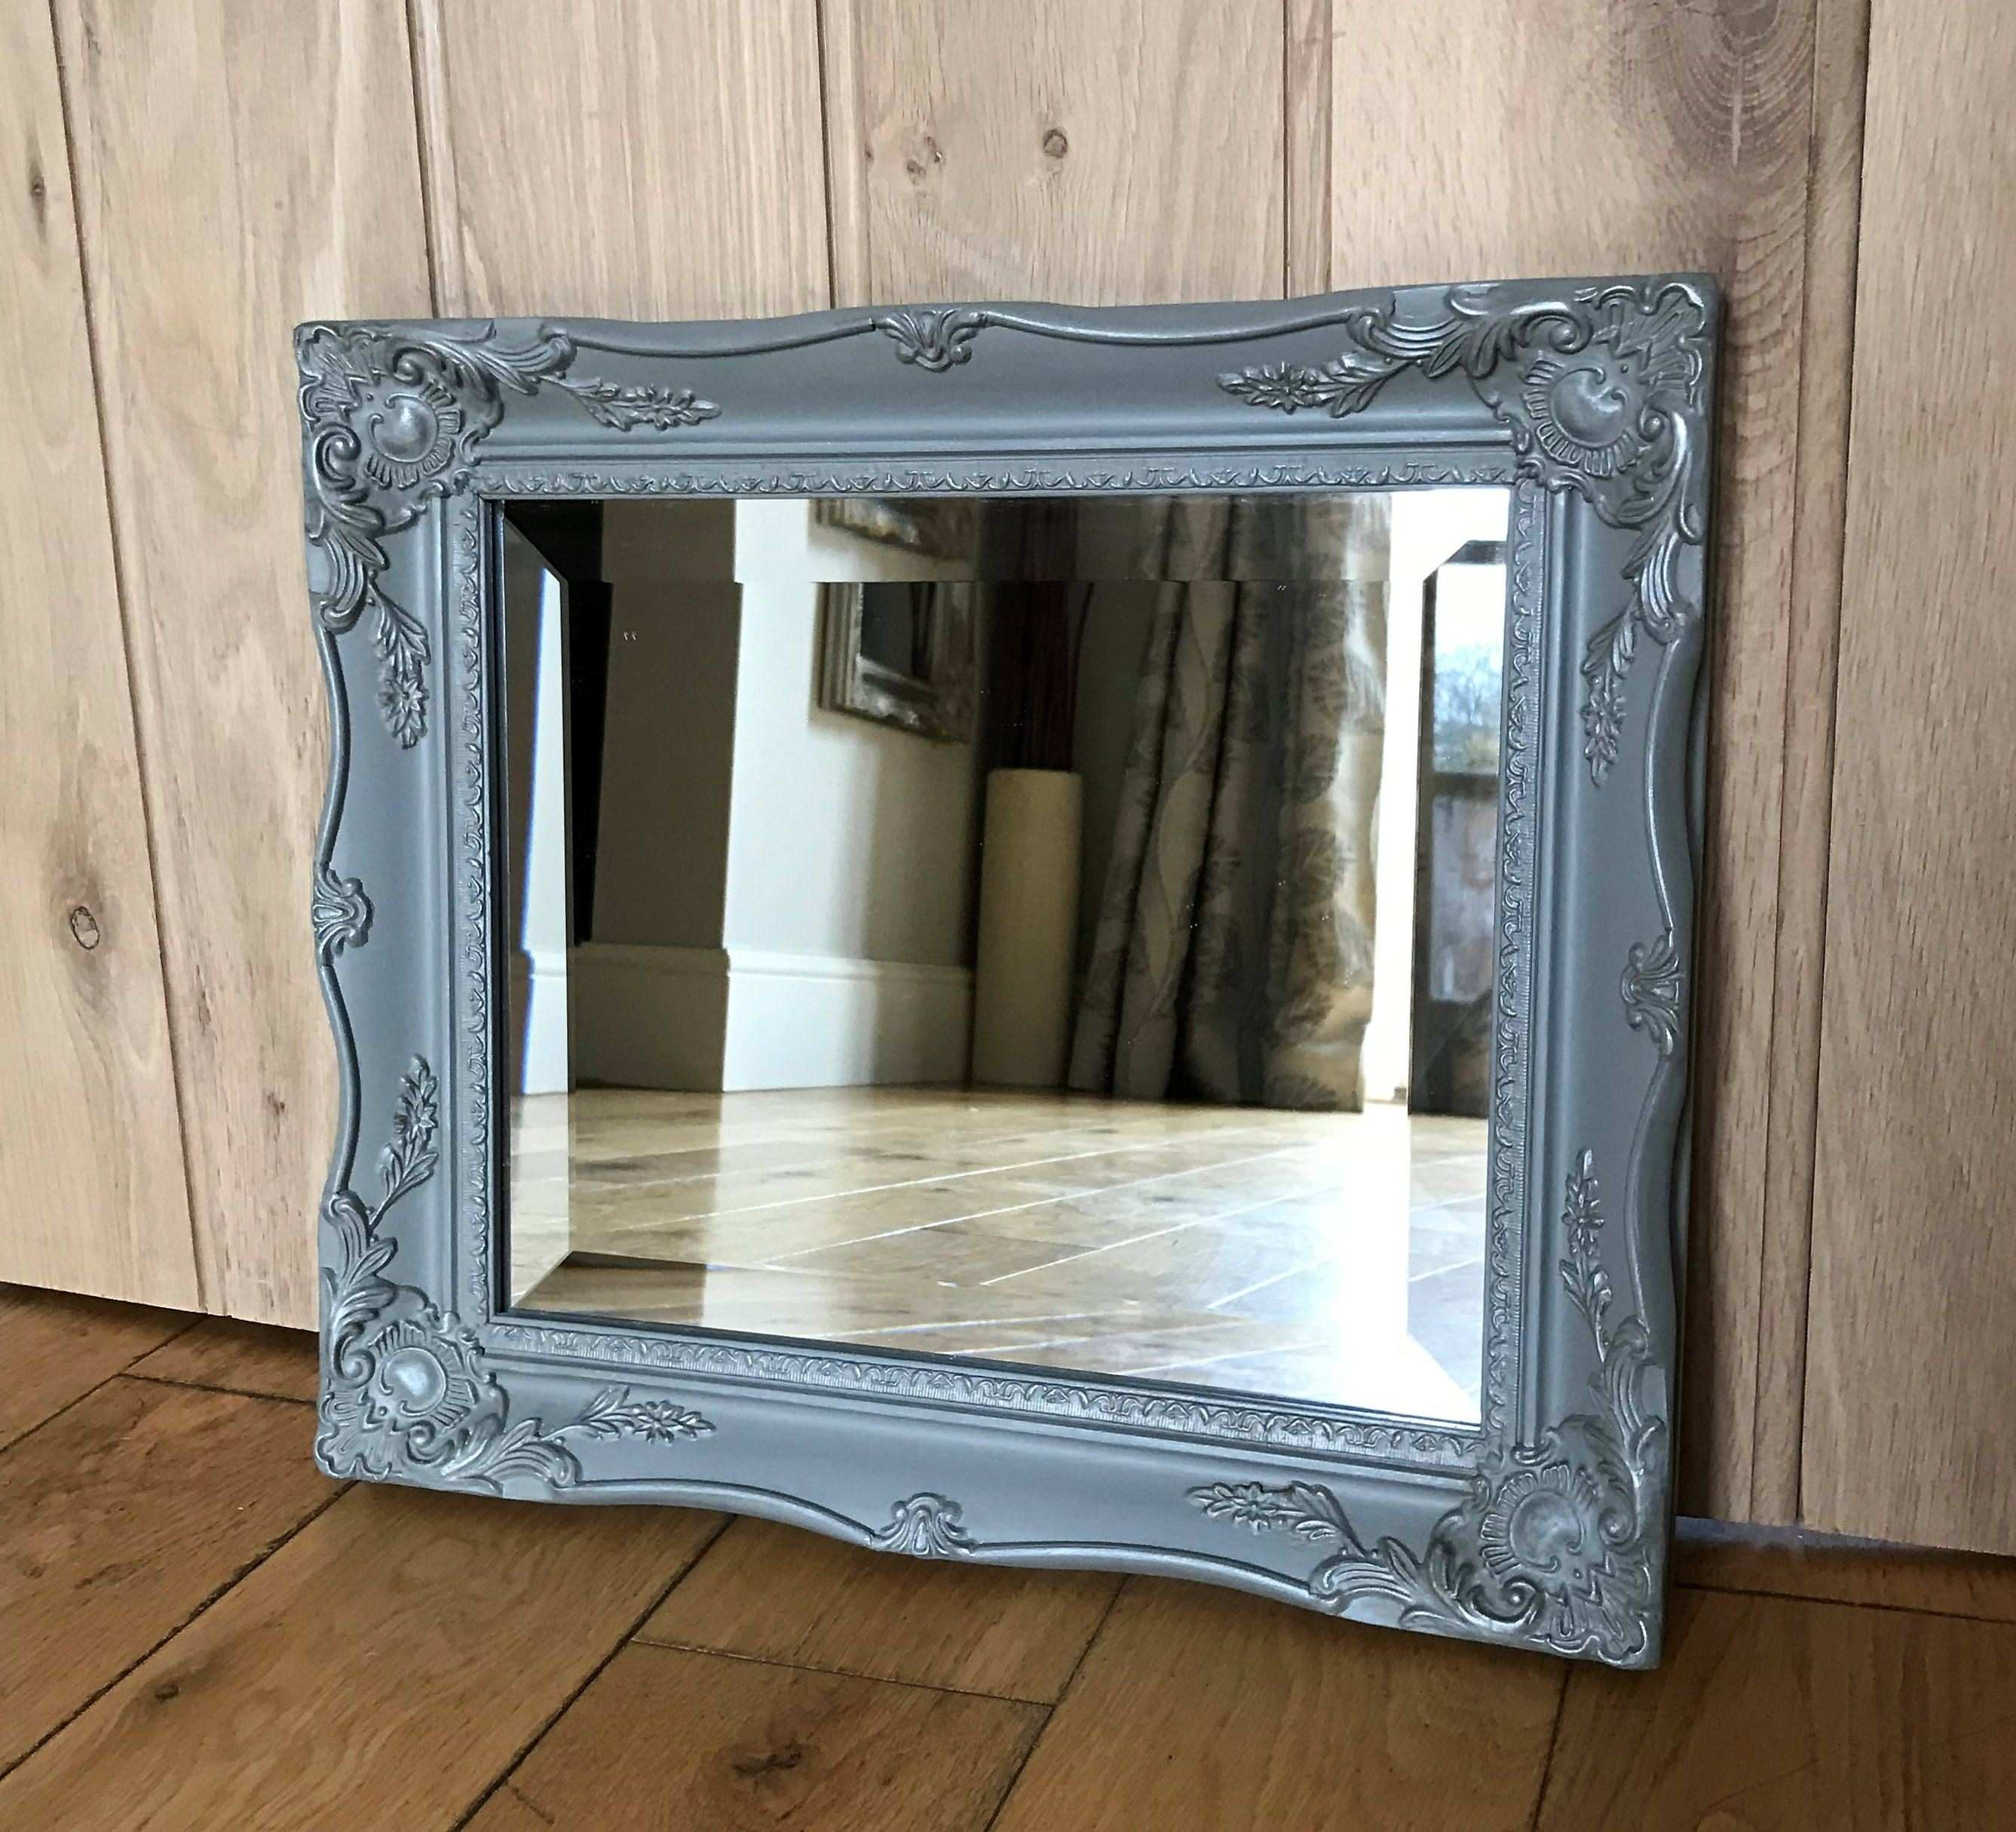 Grey Painted Ornate Mirror delivery quote available on request by